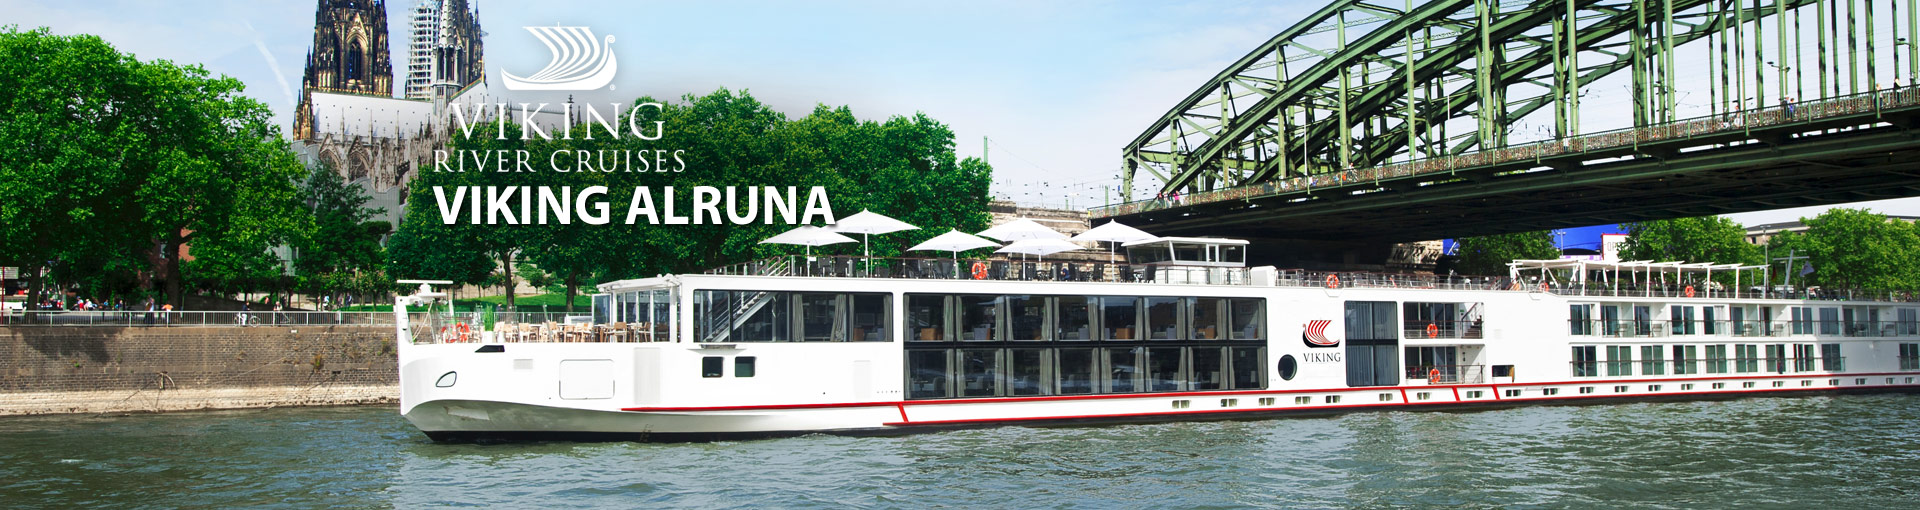 Viking Rivers Viking Alruna river cruise ship